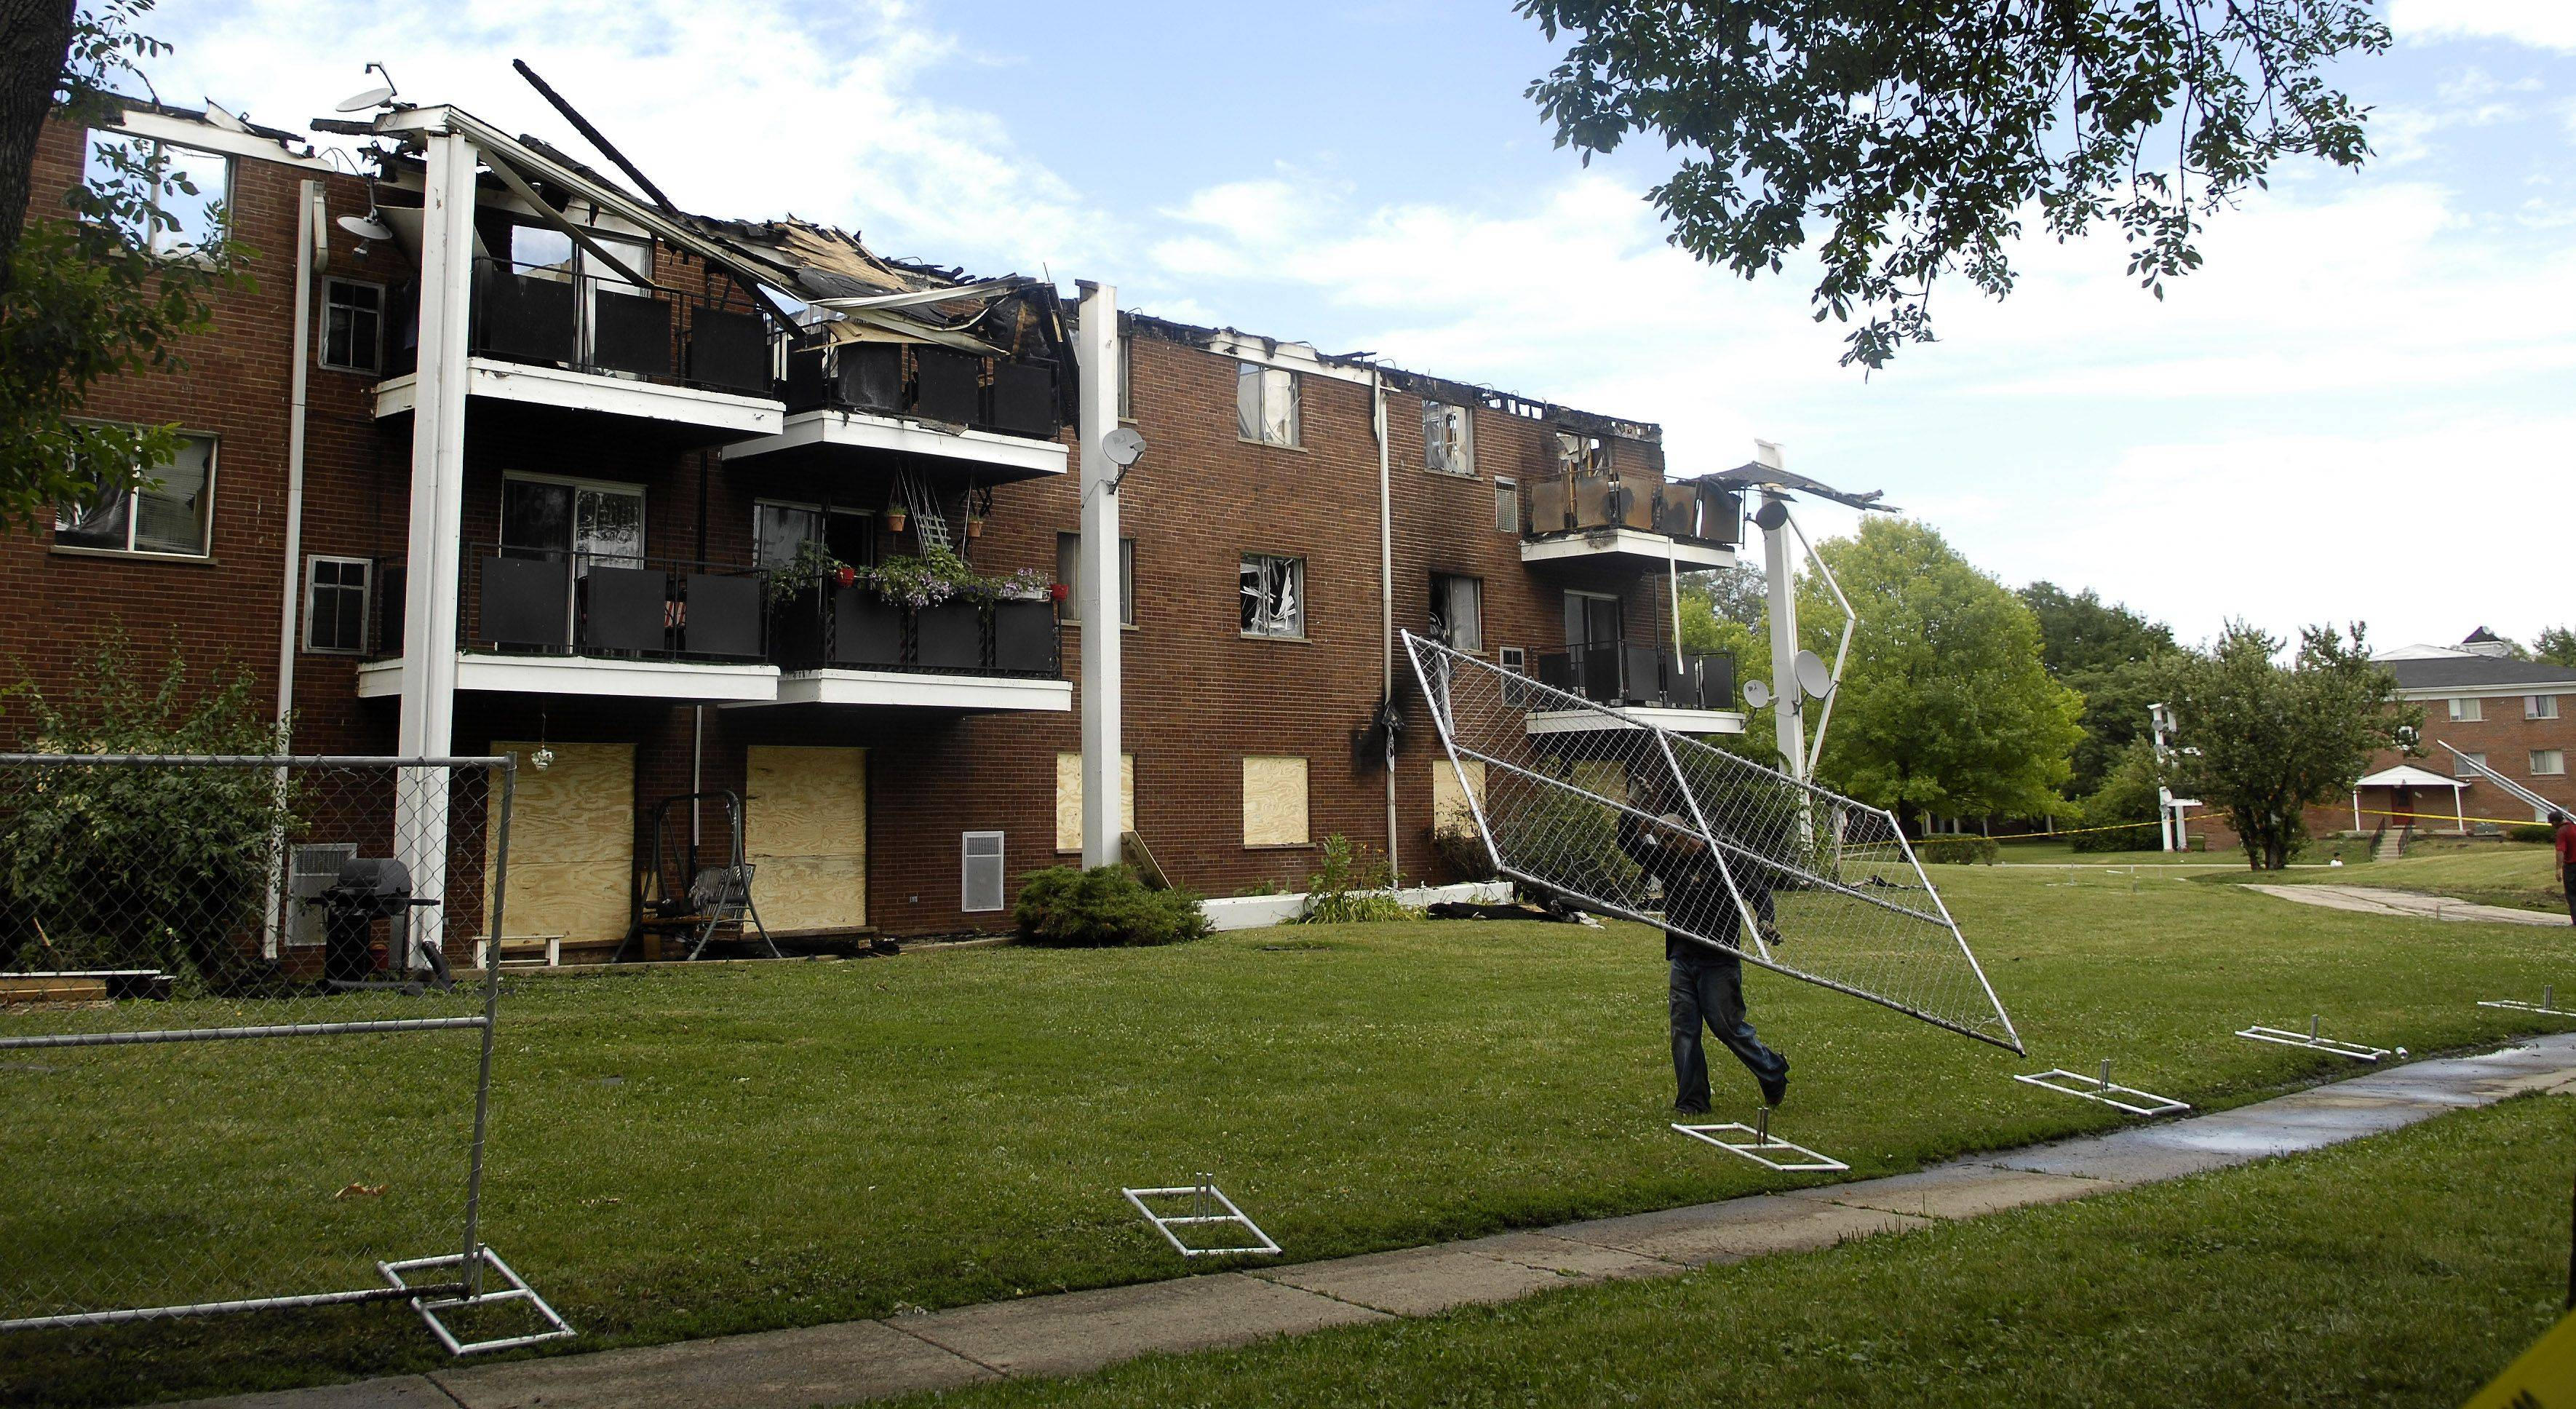 Workers install safety fences after a fire displaced residents at the Colonial Green Apartments in Mount Prospect.